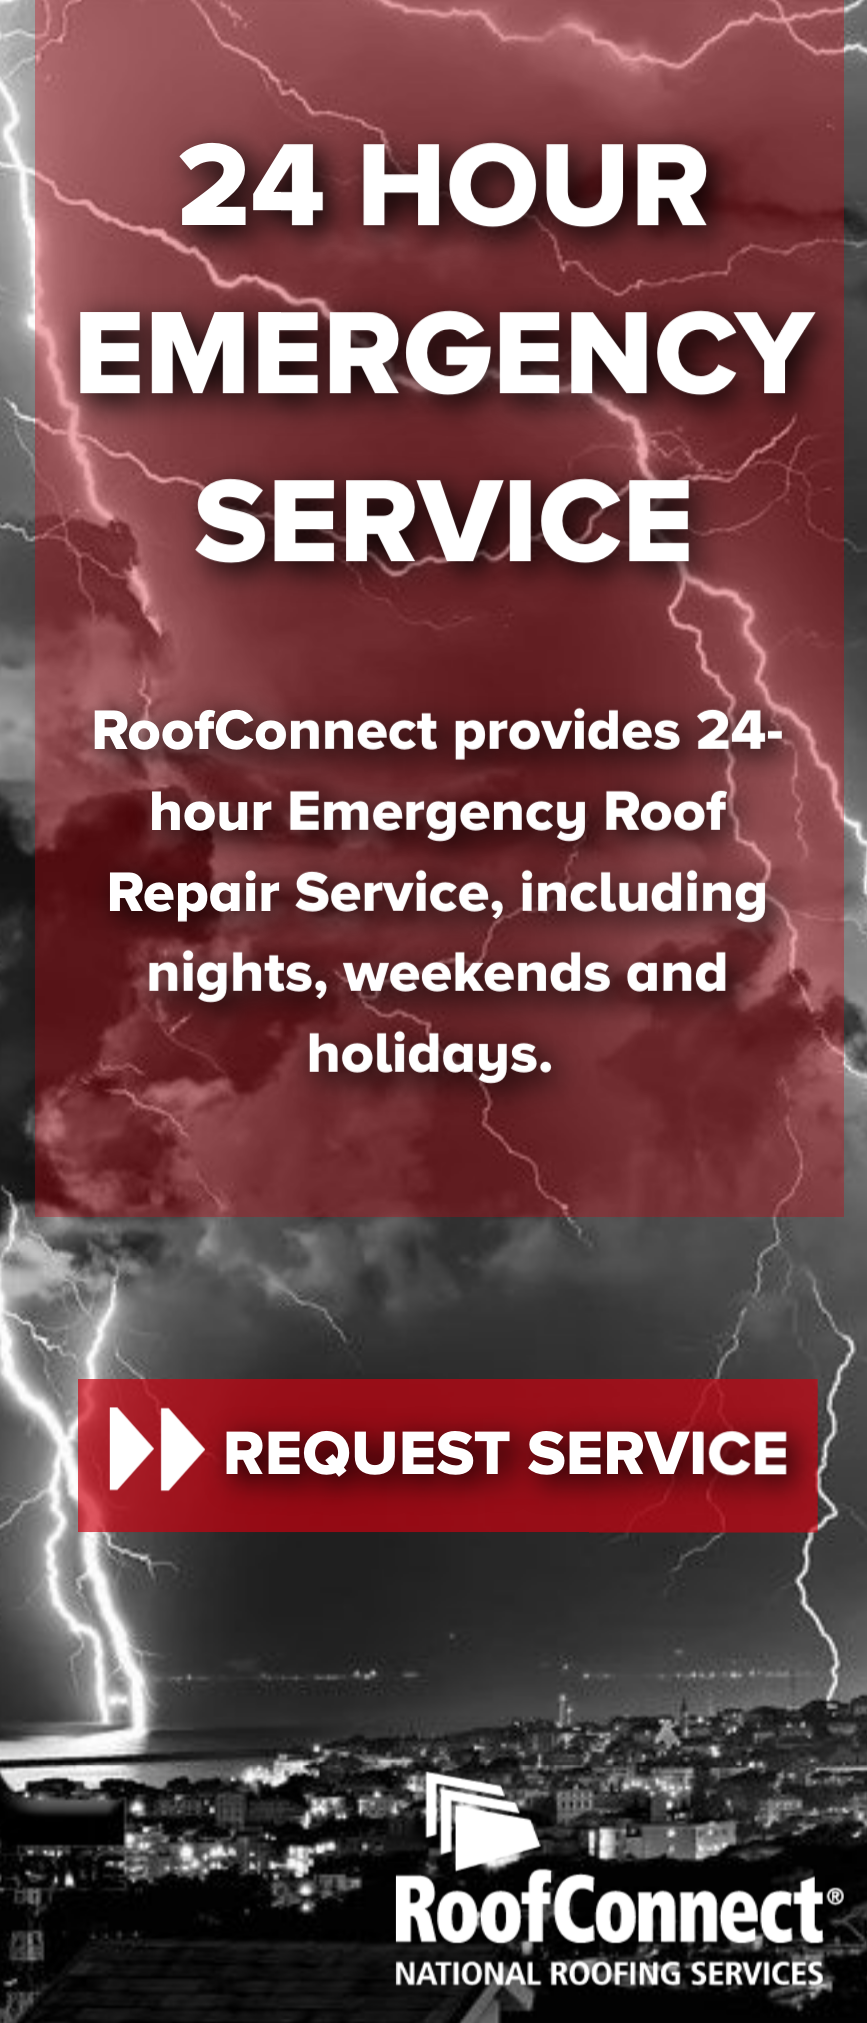 RoofConnect 24 Hour Emergency Service